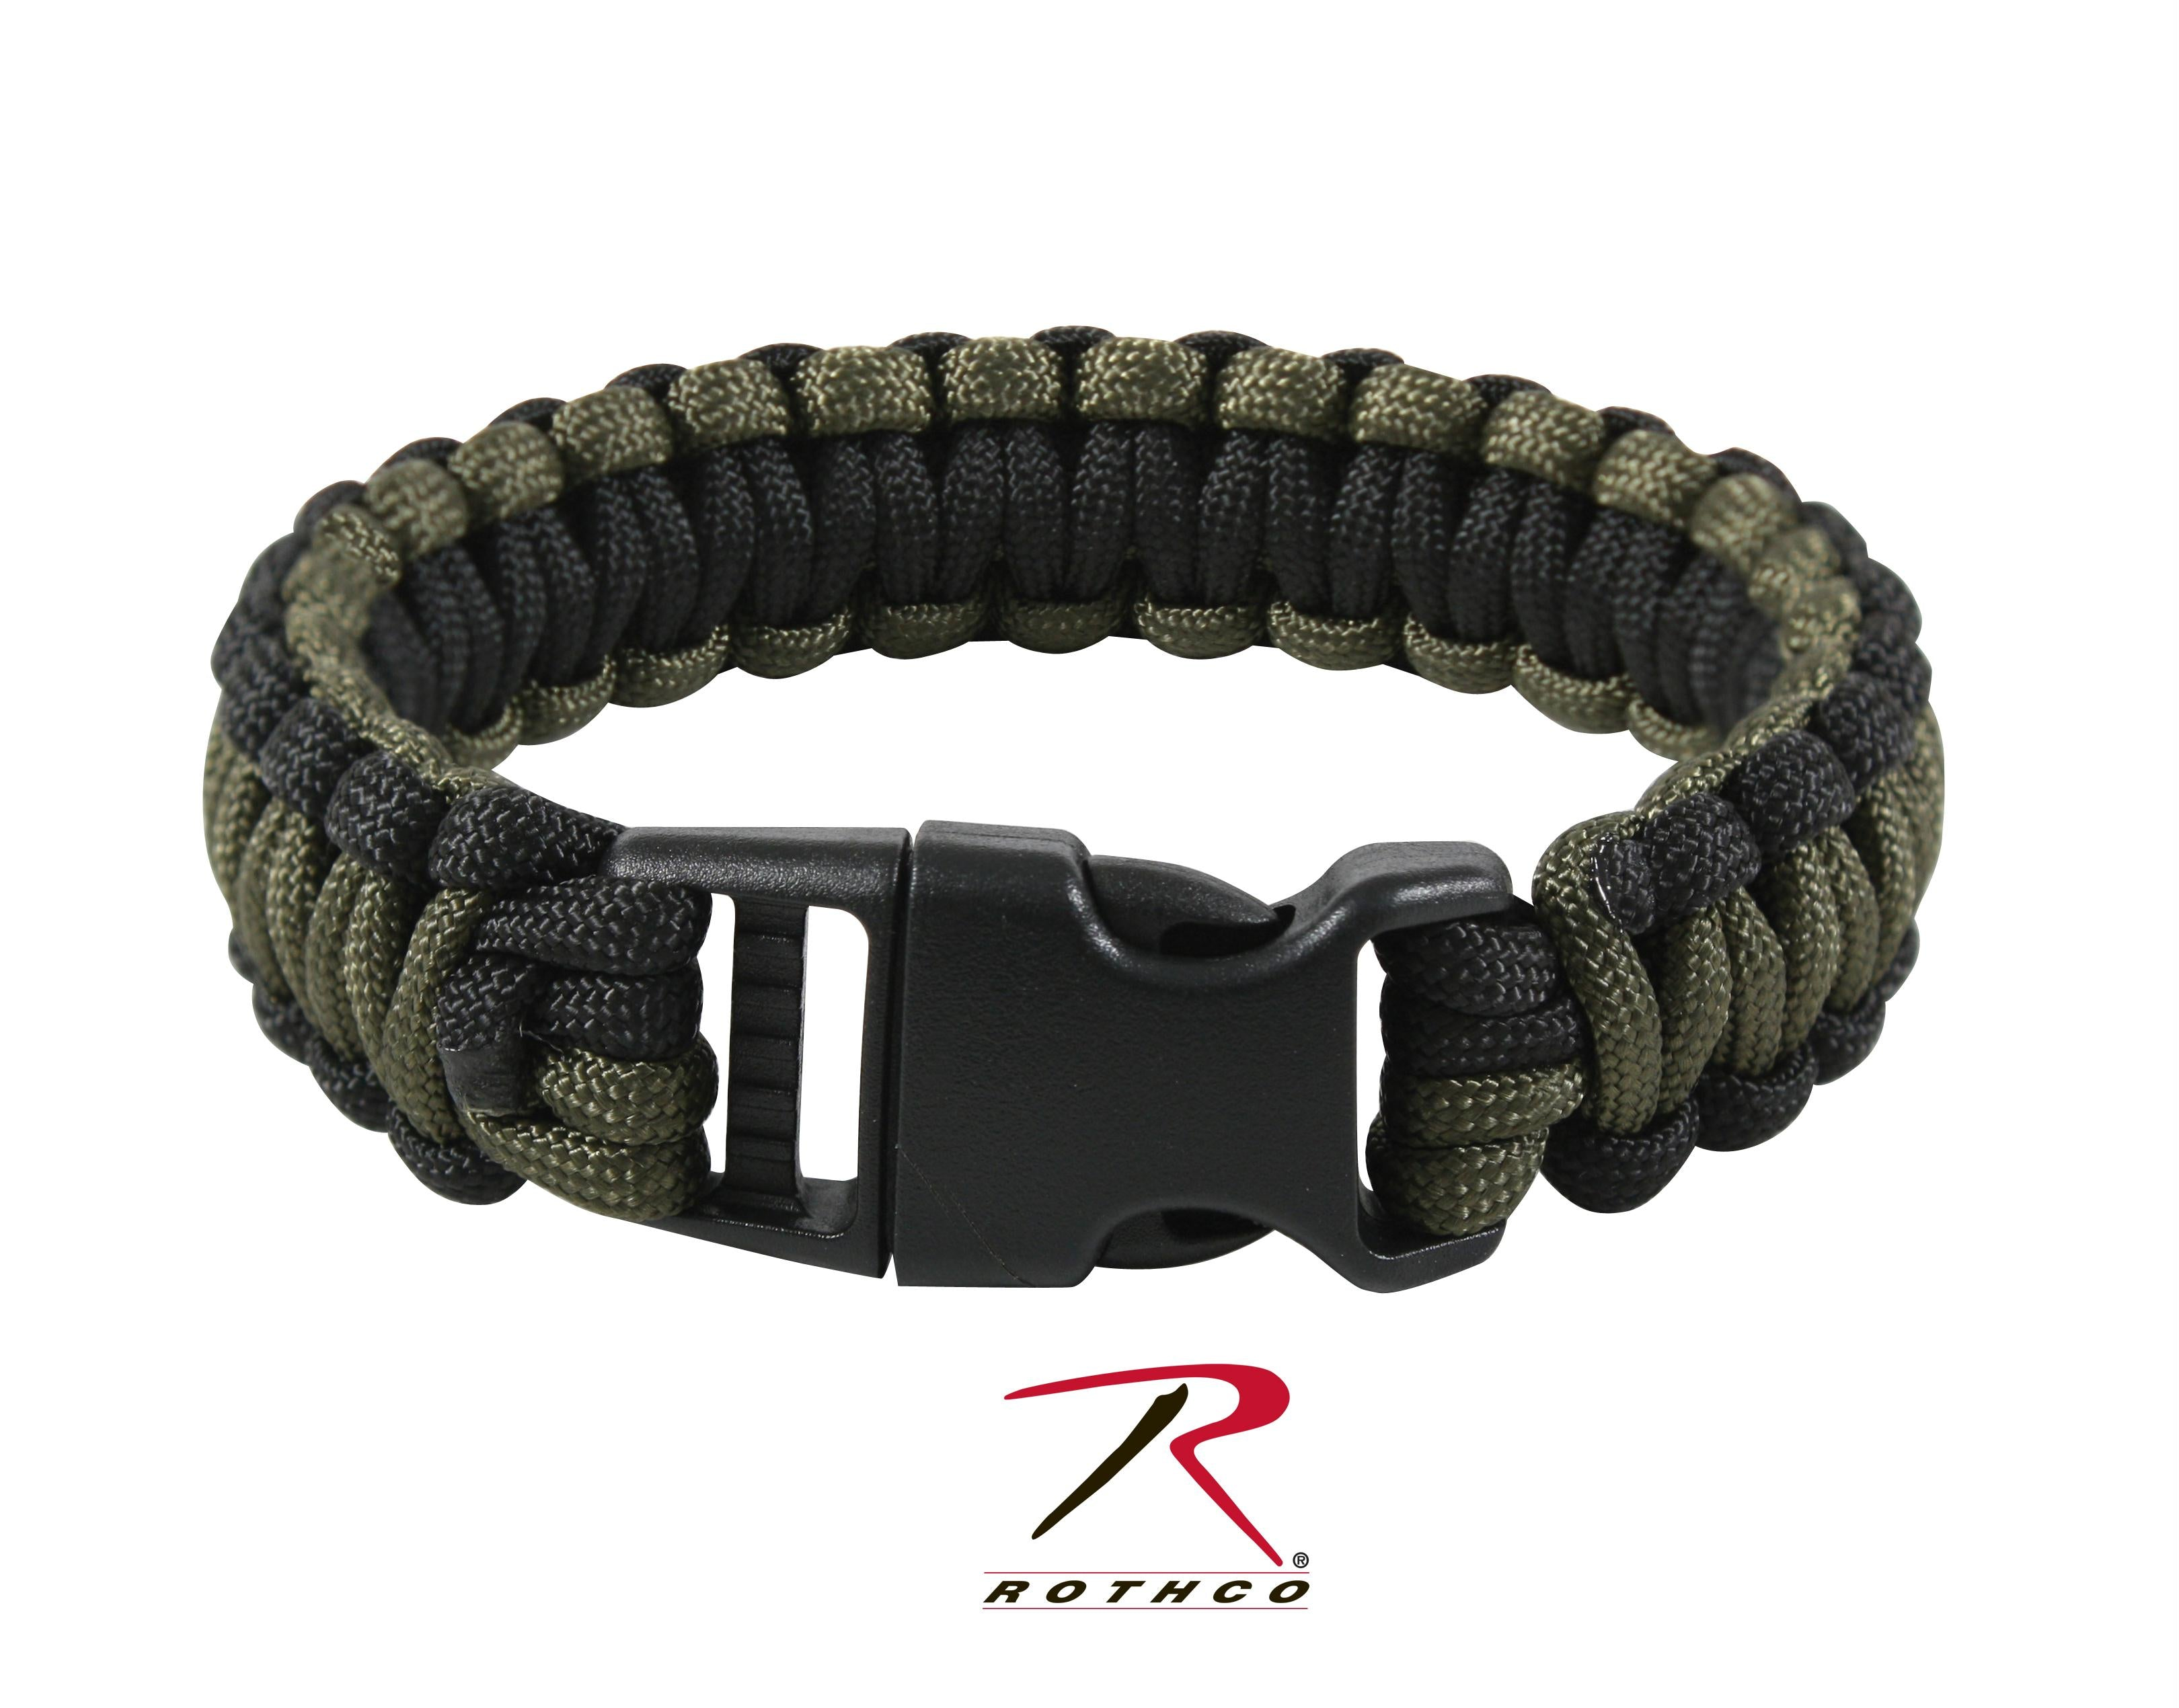 Rothco Deluxe Paracord Bracelets - Black / Olive Drab / 7 Inches